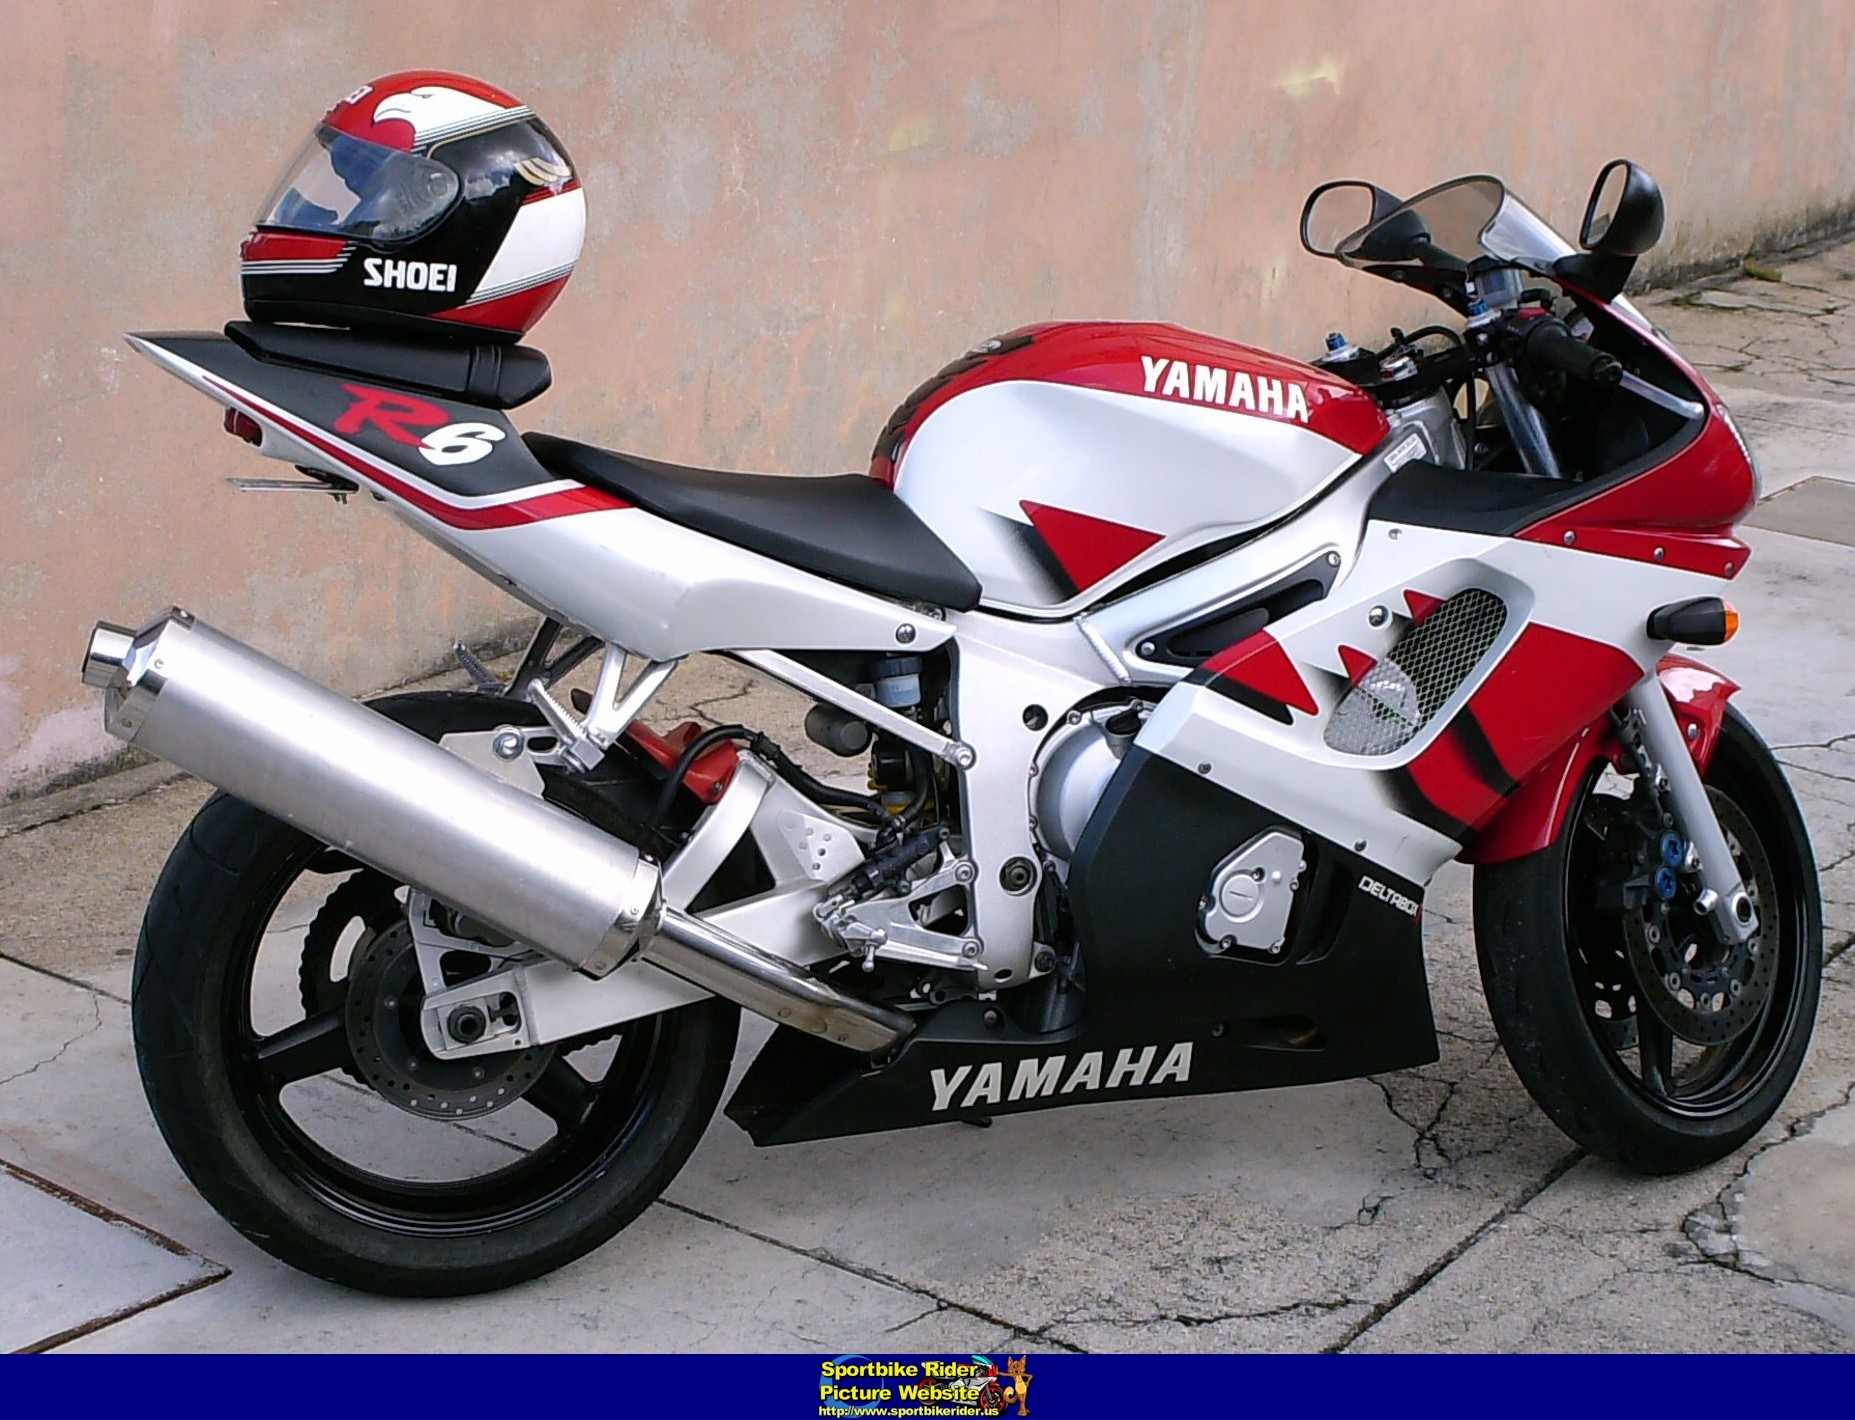 Superb 2001 Yamaha Yzf R6 Photos Informations Articles Bikes Gmtry Best Dining Table And Chair Ideas Images Gmtryco